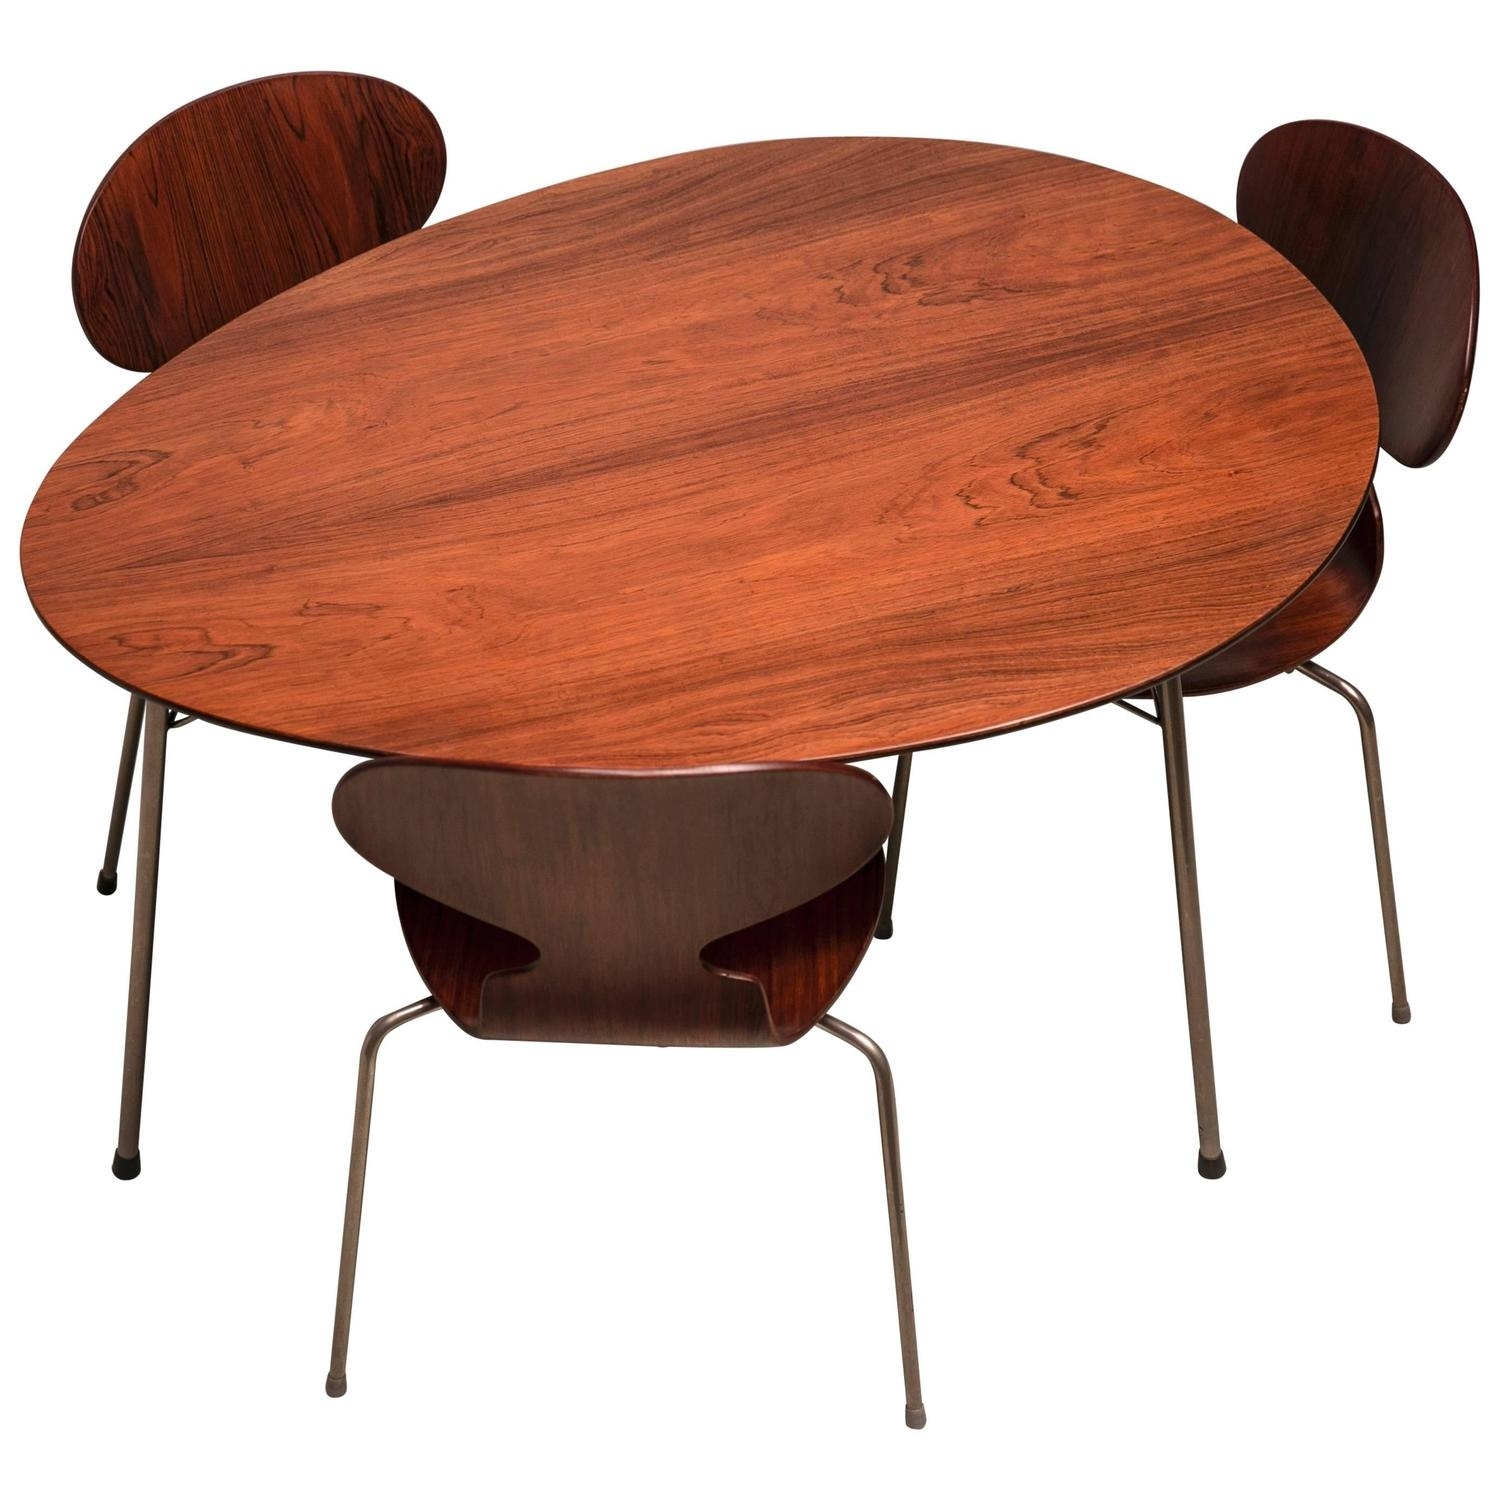 Exceptional Early Brazilian Rosewood Egg Table And Ant Chairs Throughout Mid Century Modern Egg Tables (Photo 7 of 30)